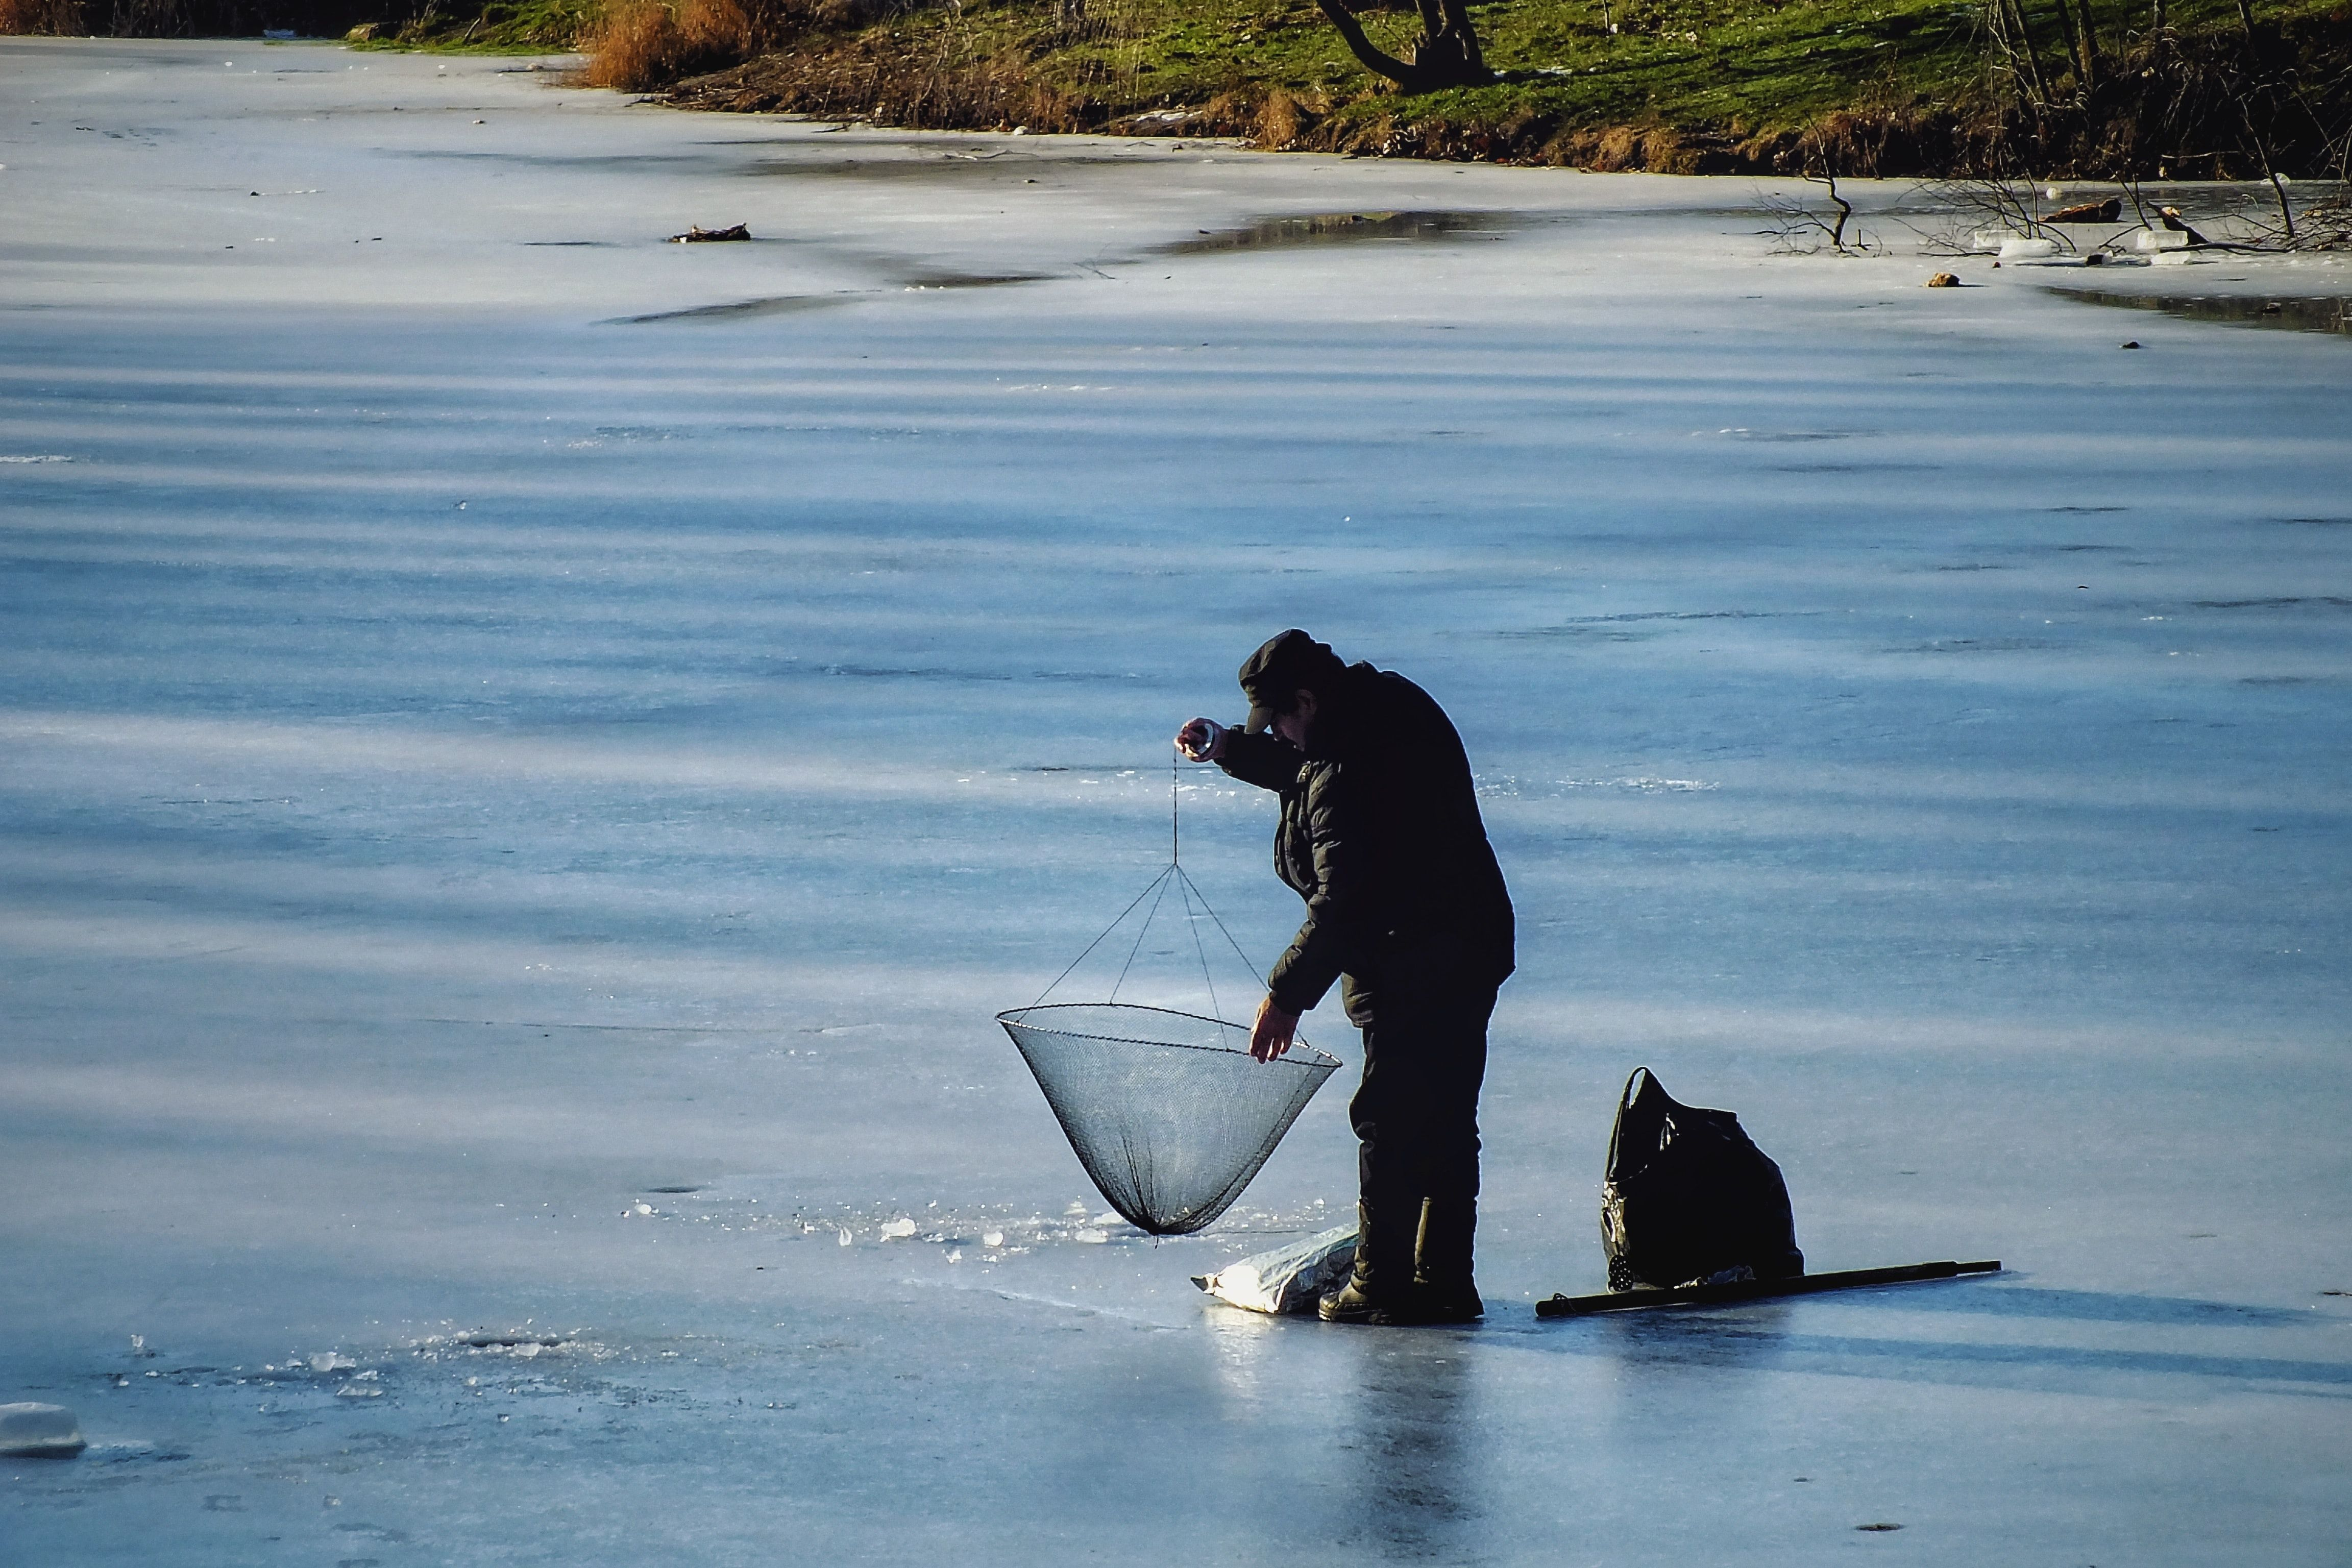 Ice Fishing On the Ice